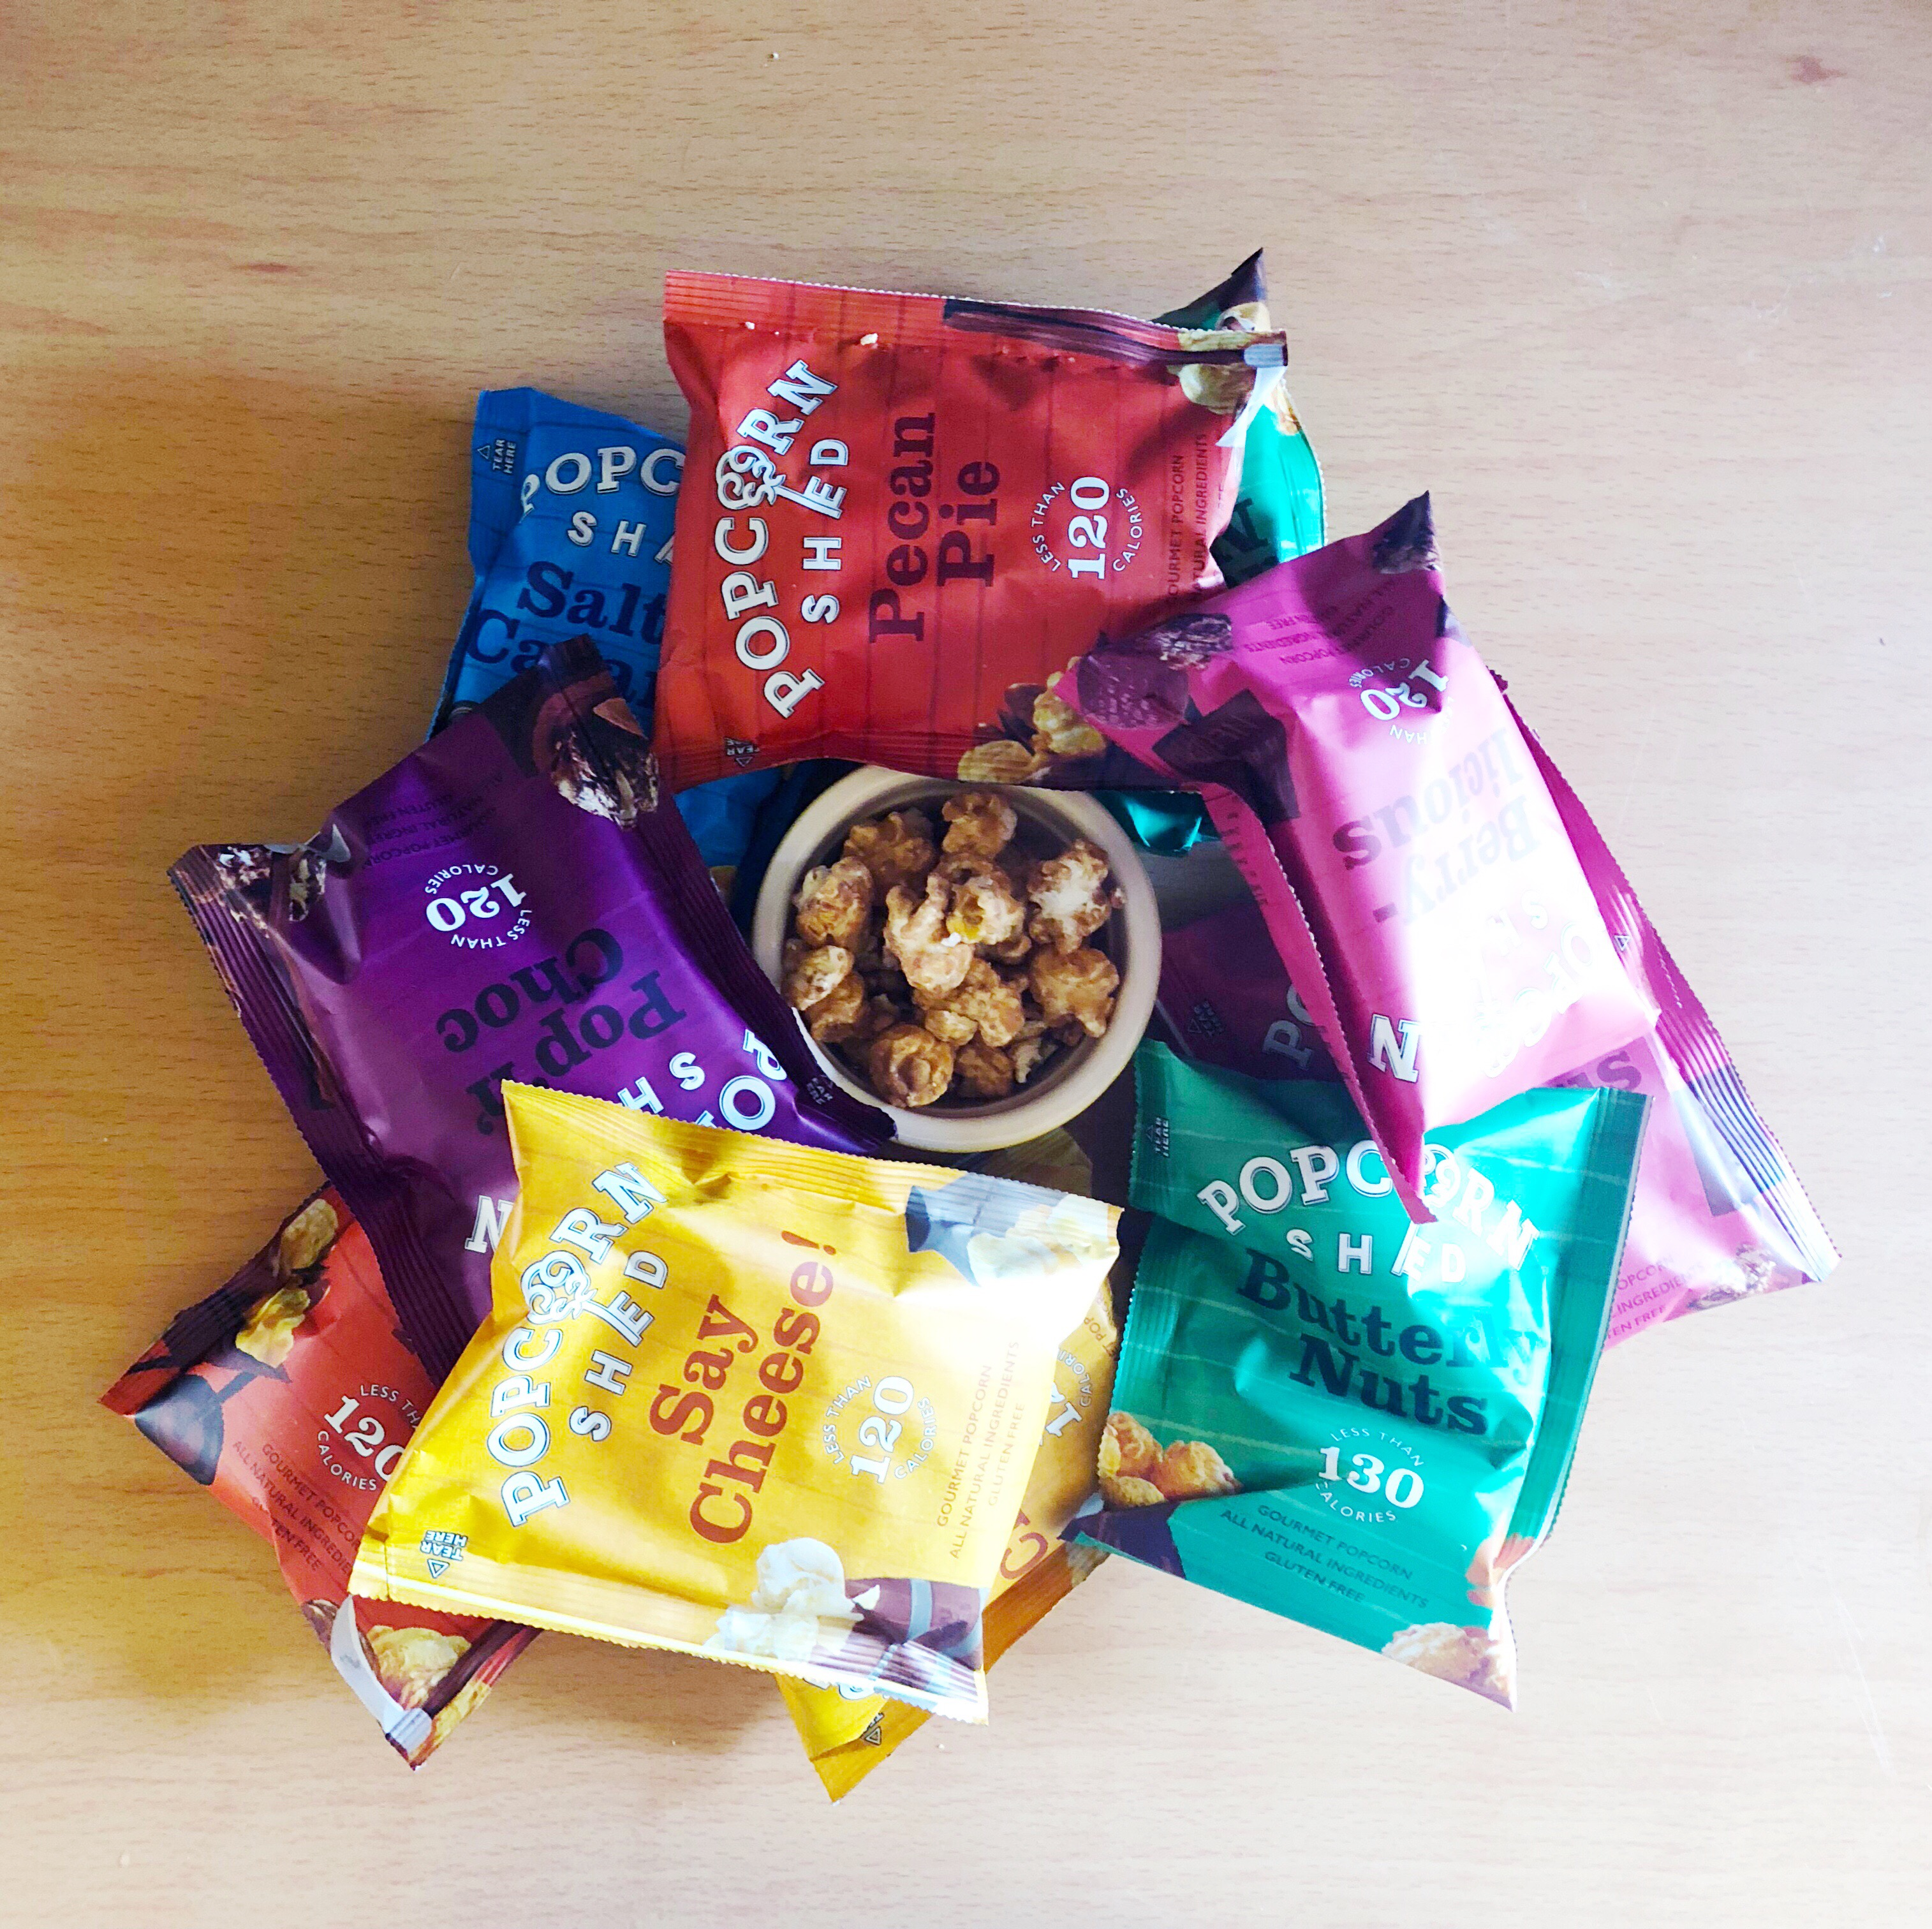 Gourmet Popcorn by Popcorn Shed – Review